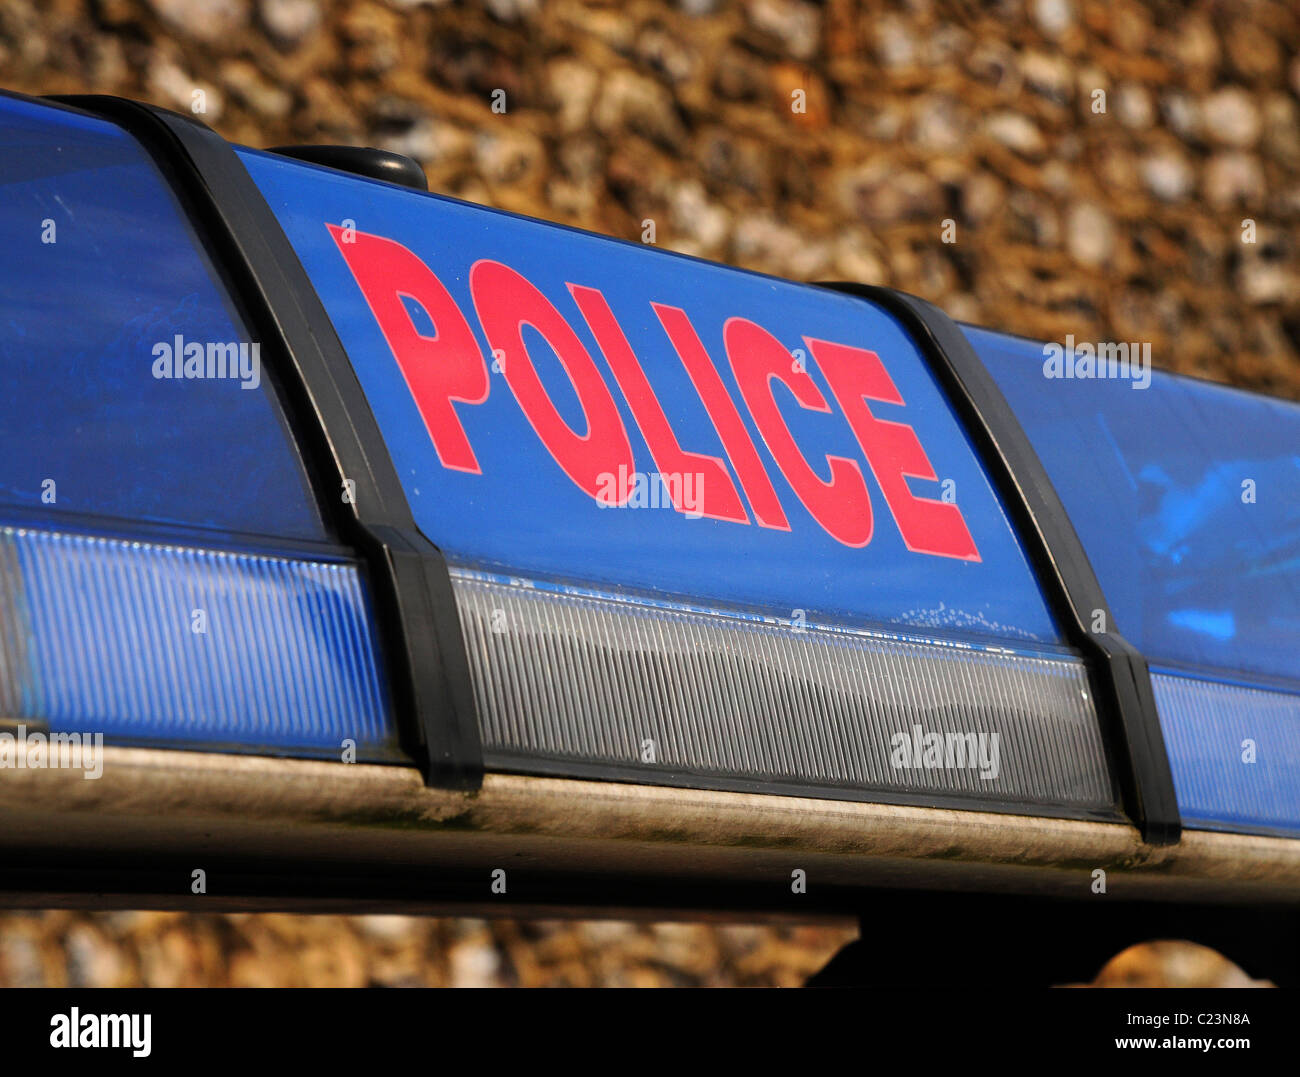 Detail of red on blue police lights and marking. - Stock Image